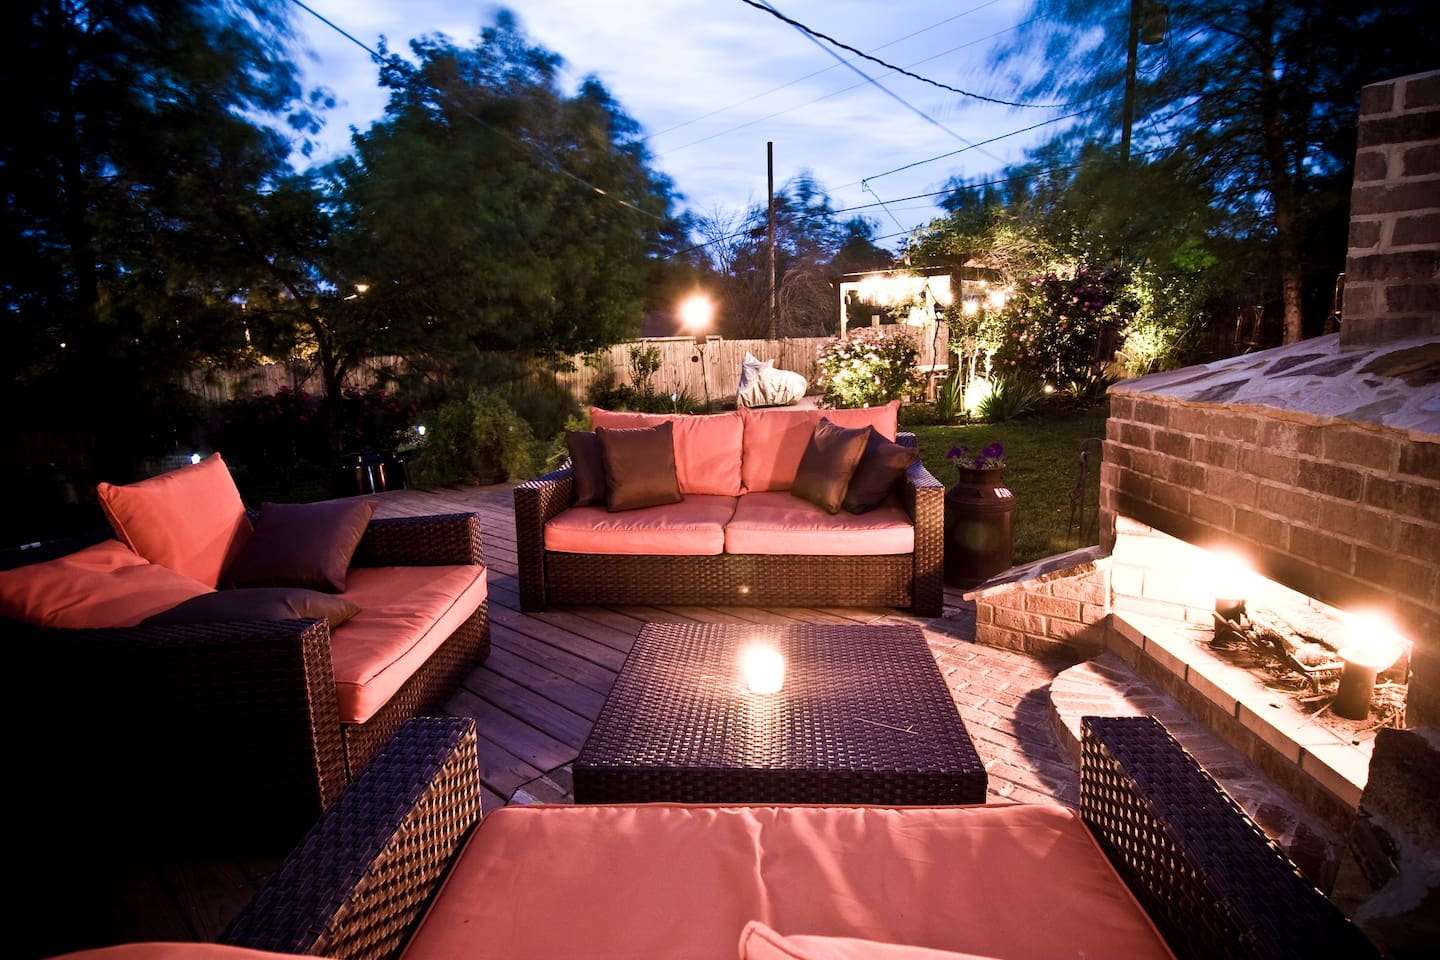 The back garden seating area and outside fireplace